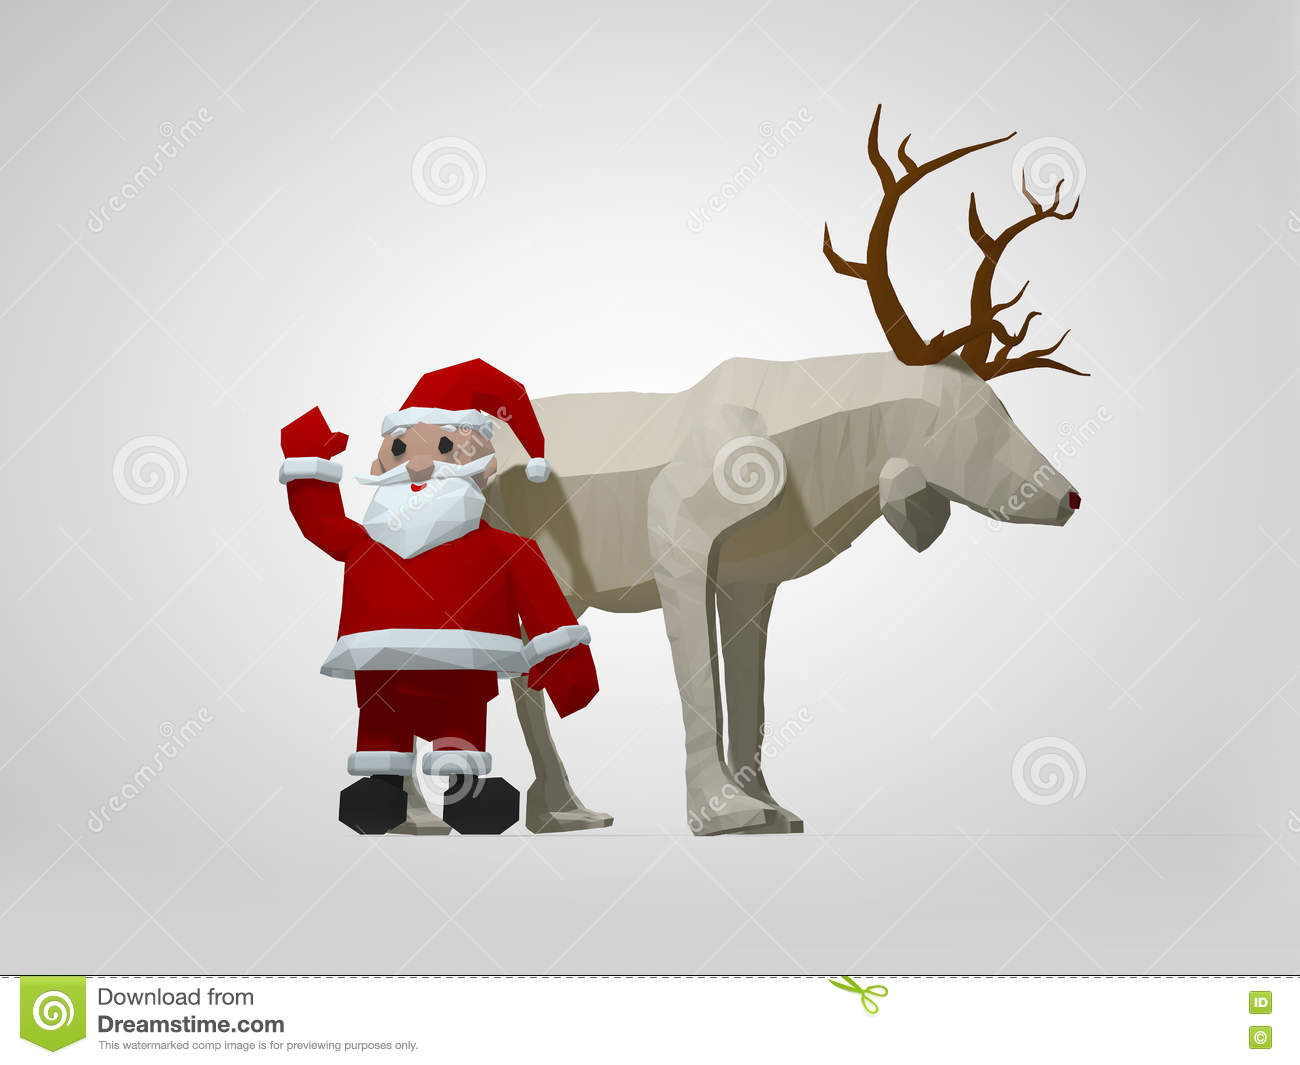 Holiday Origami Diagram Wiring Diagrams Christmas 3d Illustration Of Reindeer And Santa Complex Advanced